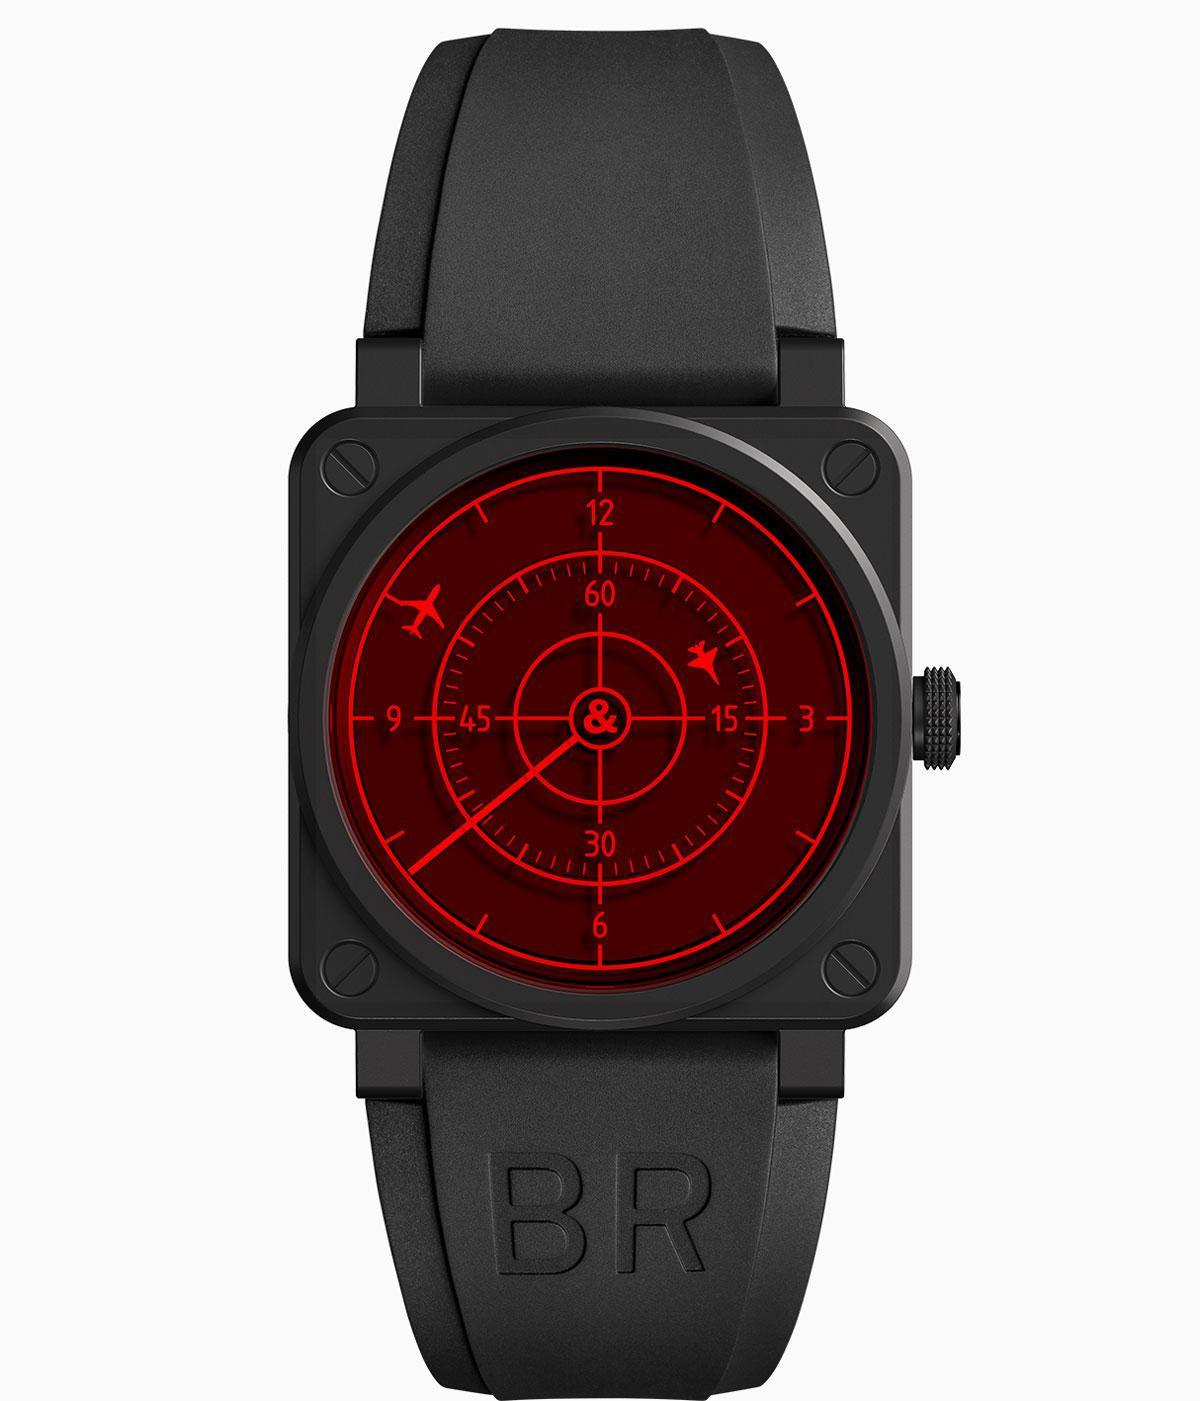 Black bell and ross watch with a red face with planes flying on it